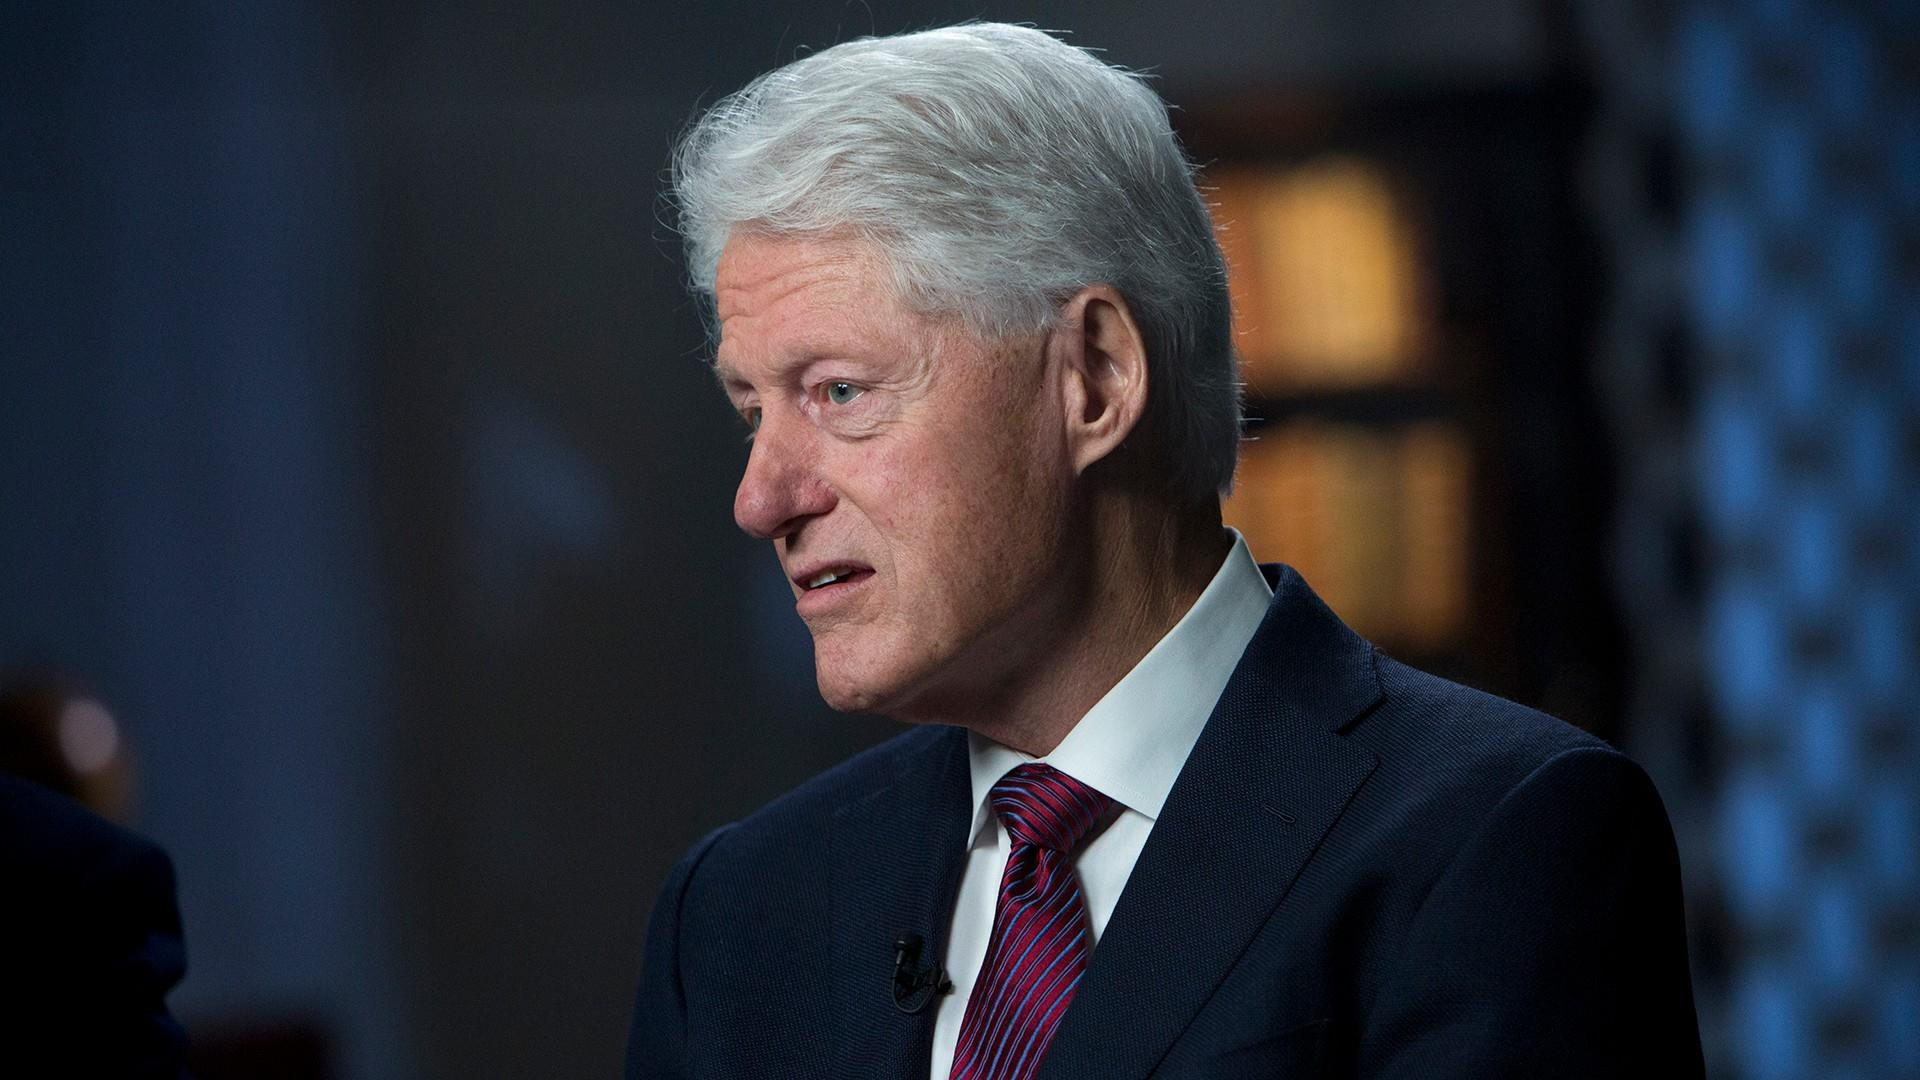 bill clintons politics and the lewinsky scandal Washington - bill clinton tried to save his presidency last night with an extraordinary tv speech confessing to an affair with monica lewinsky and misleading the nation and his wife for seven.